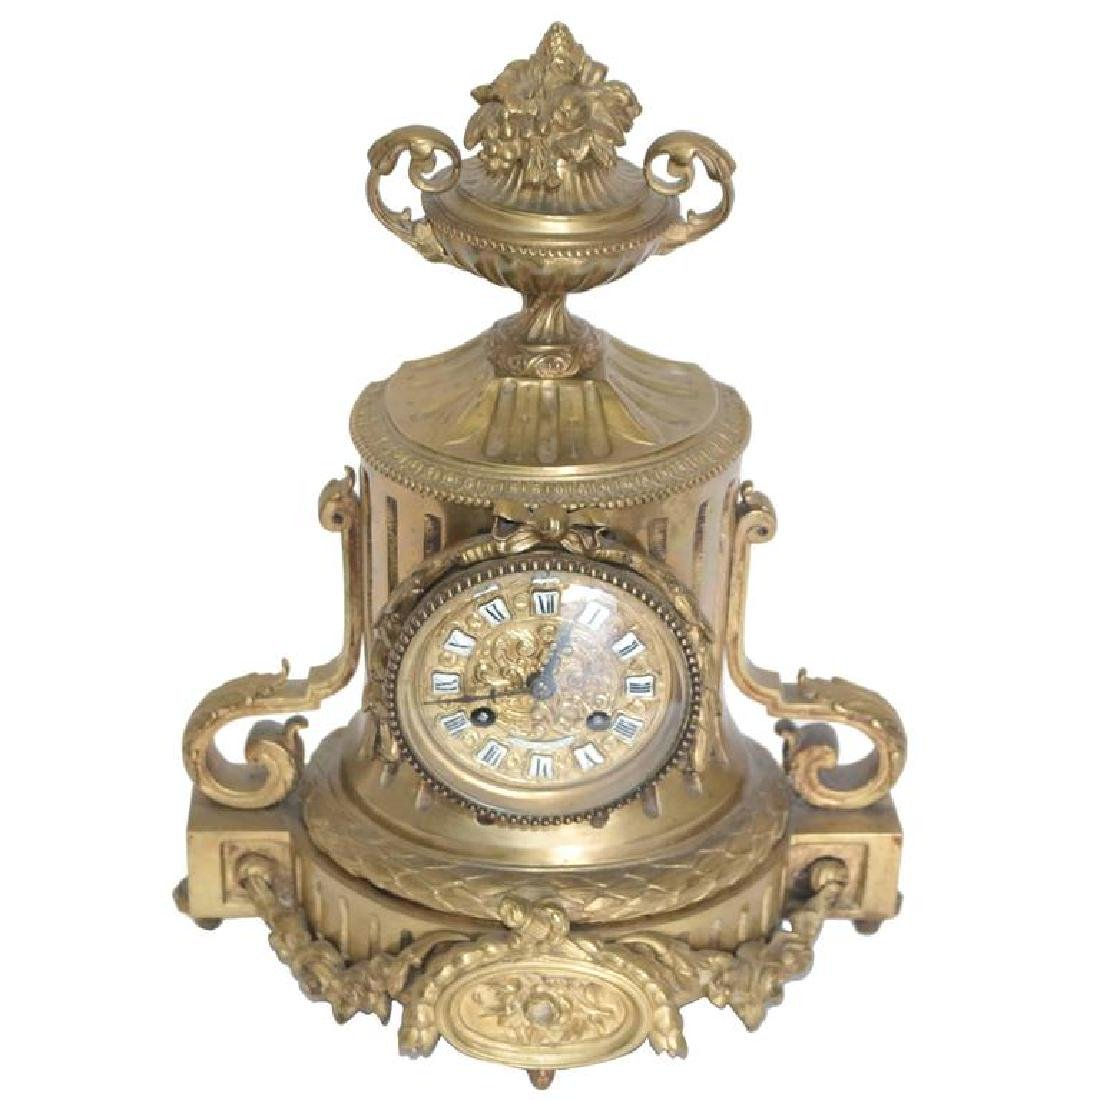 Tiffany & Co. 19th Century Bronze Mantel Clock